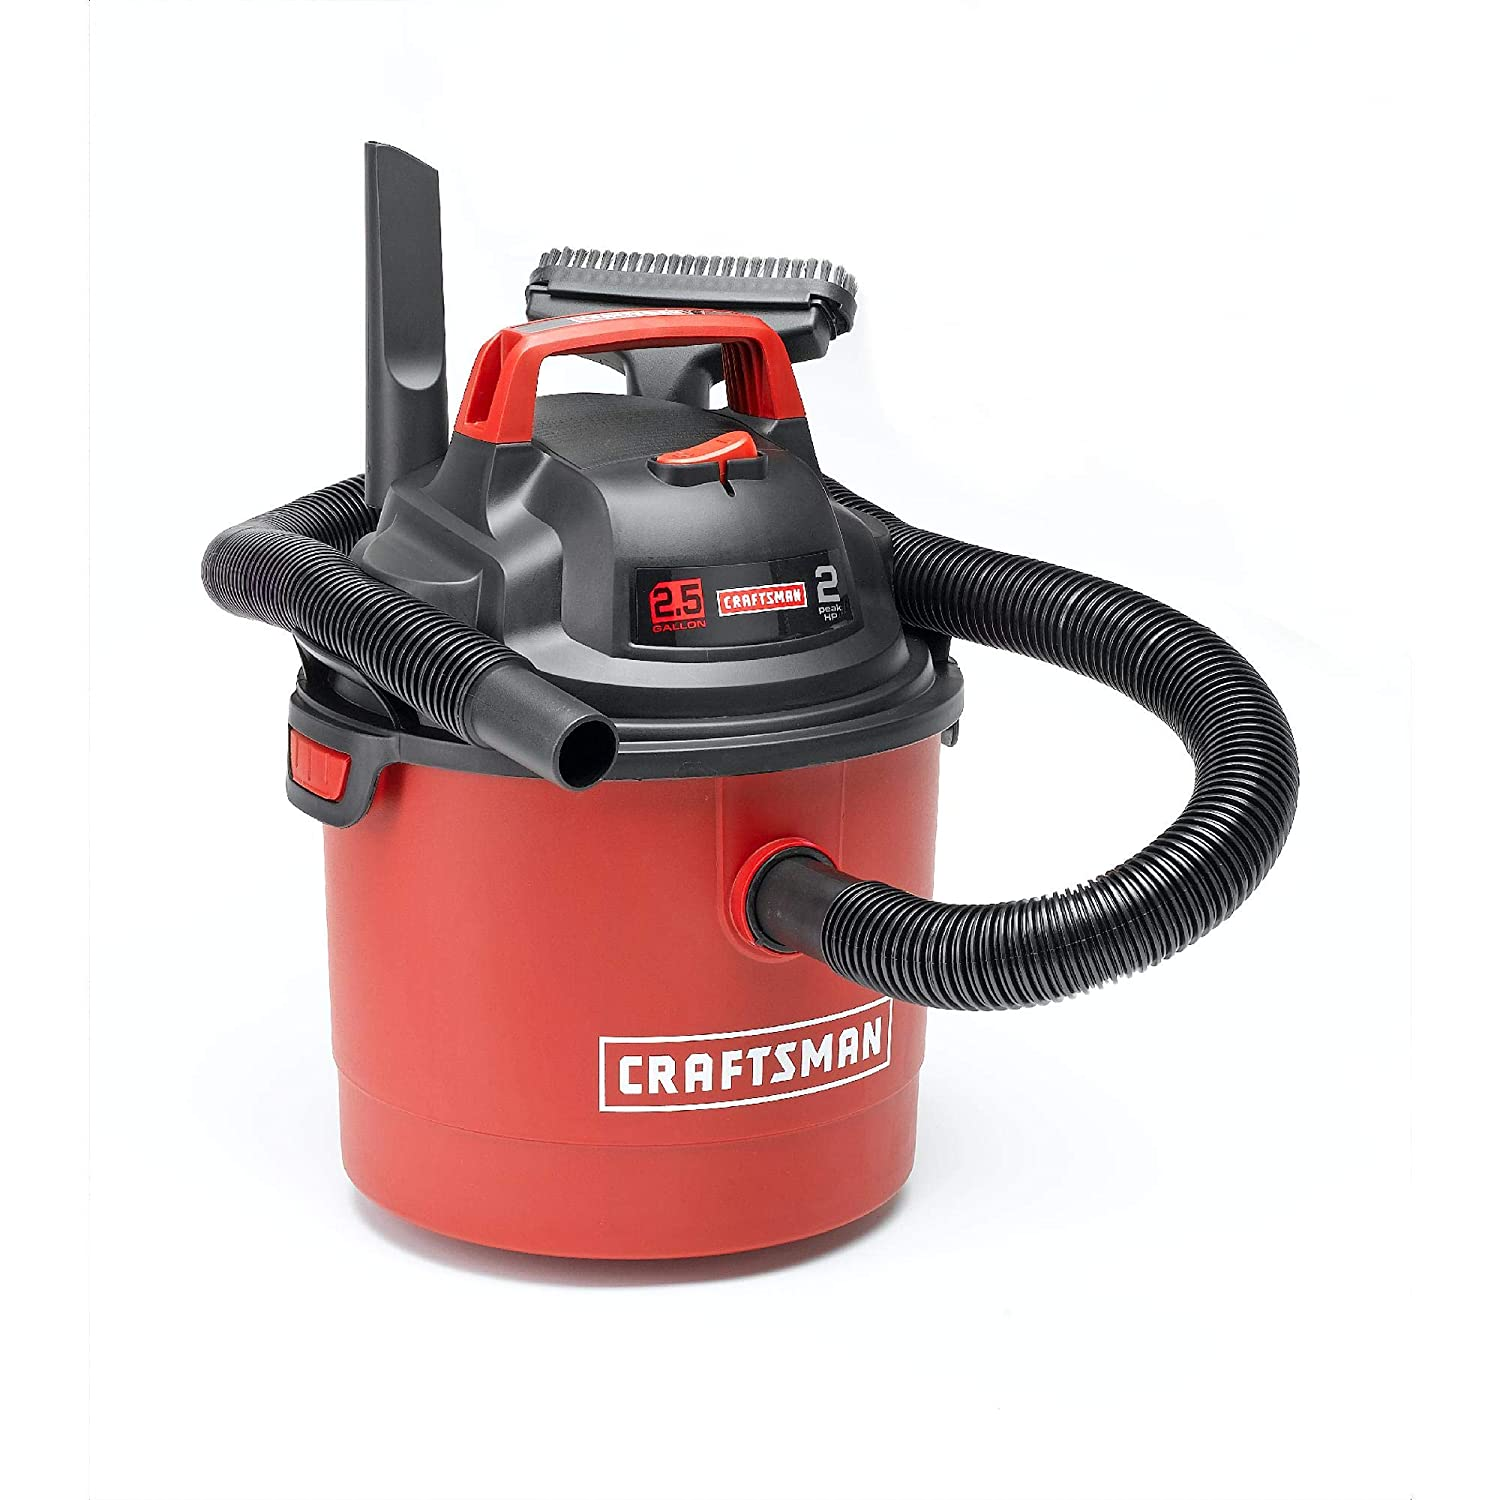 Craftsman 2.5 Gallon 2 Peak HP Wet Dry vac Wall Mount